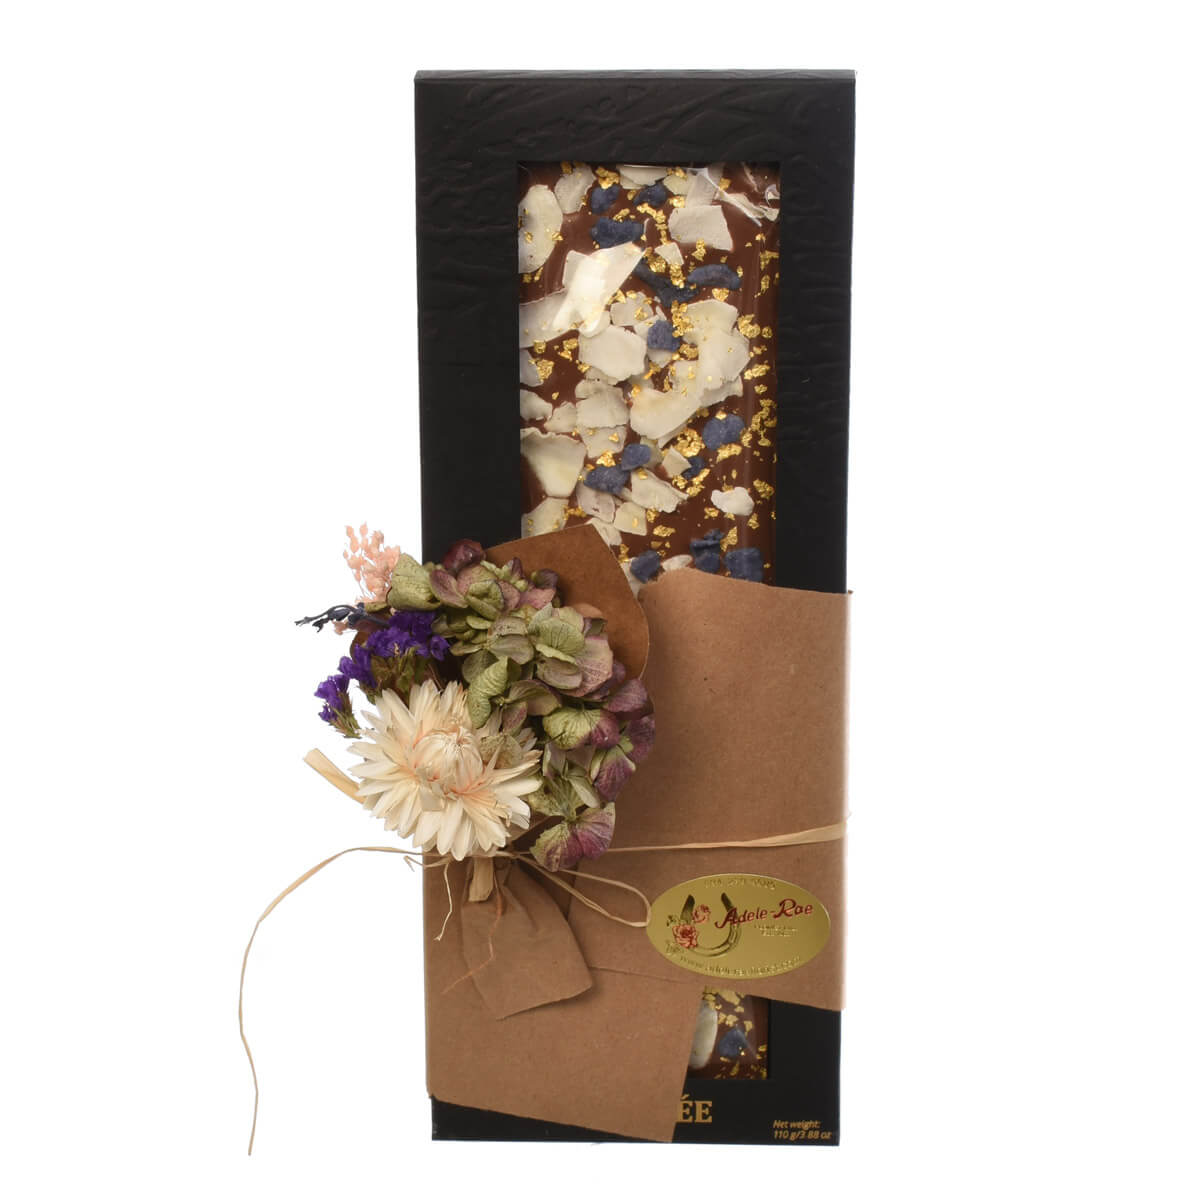 Chocolate bar with crystallized violet petals